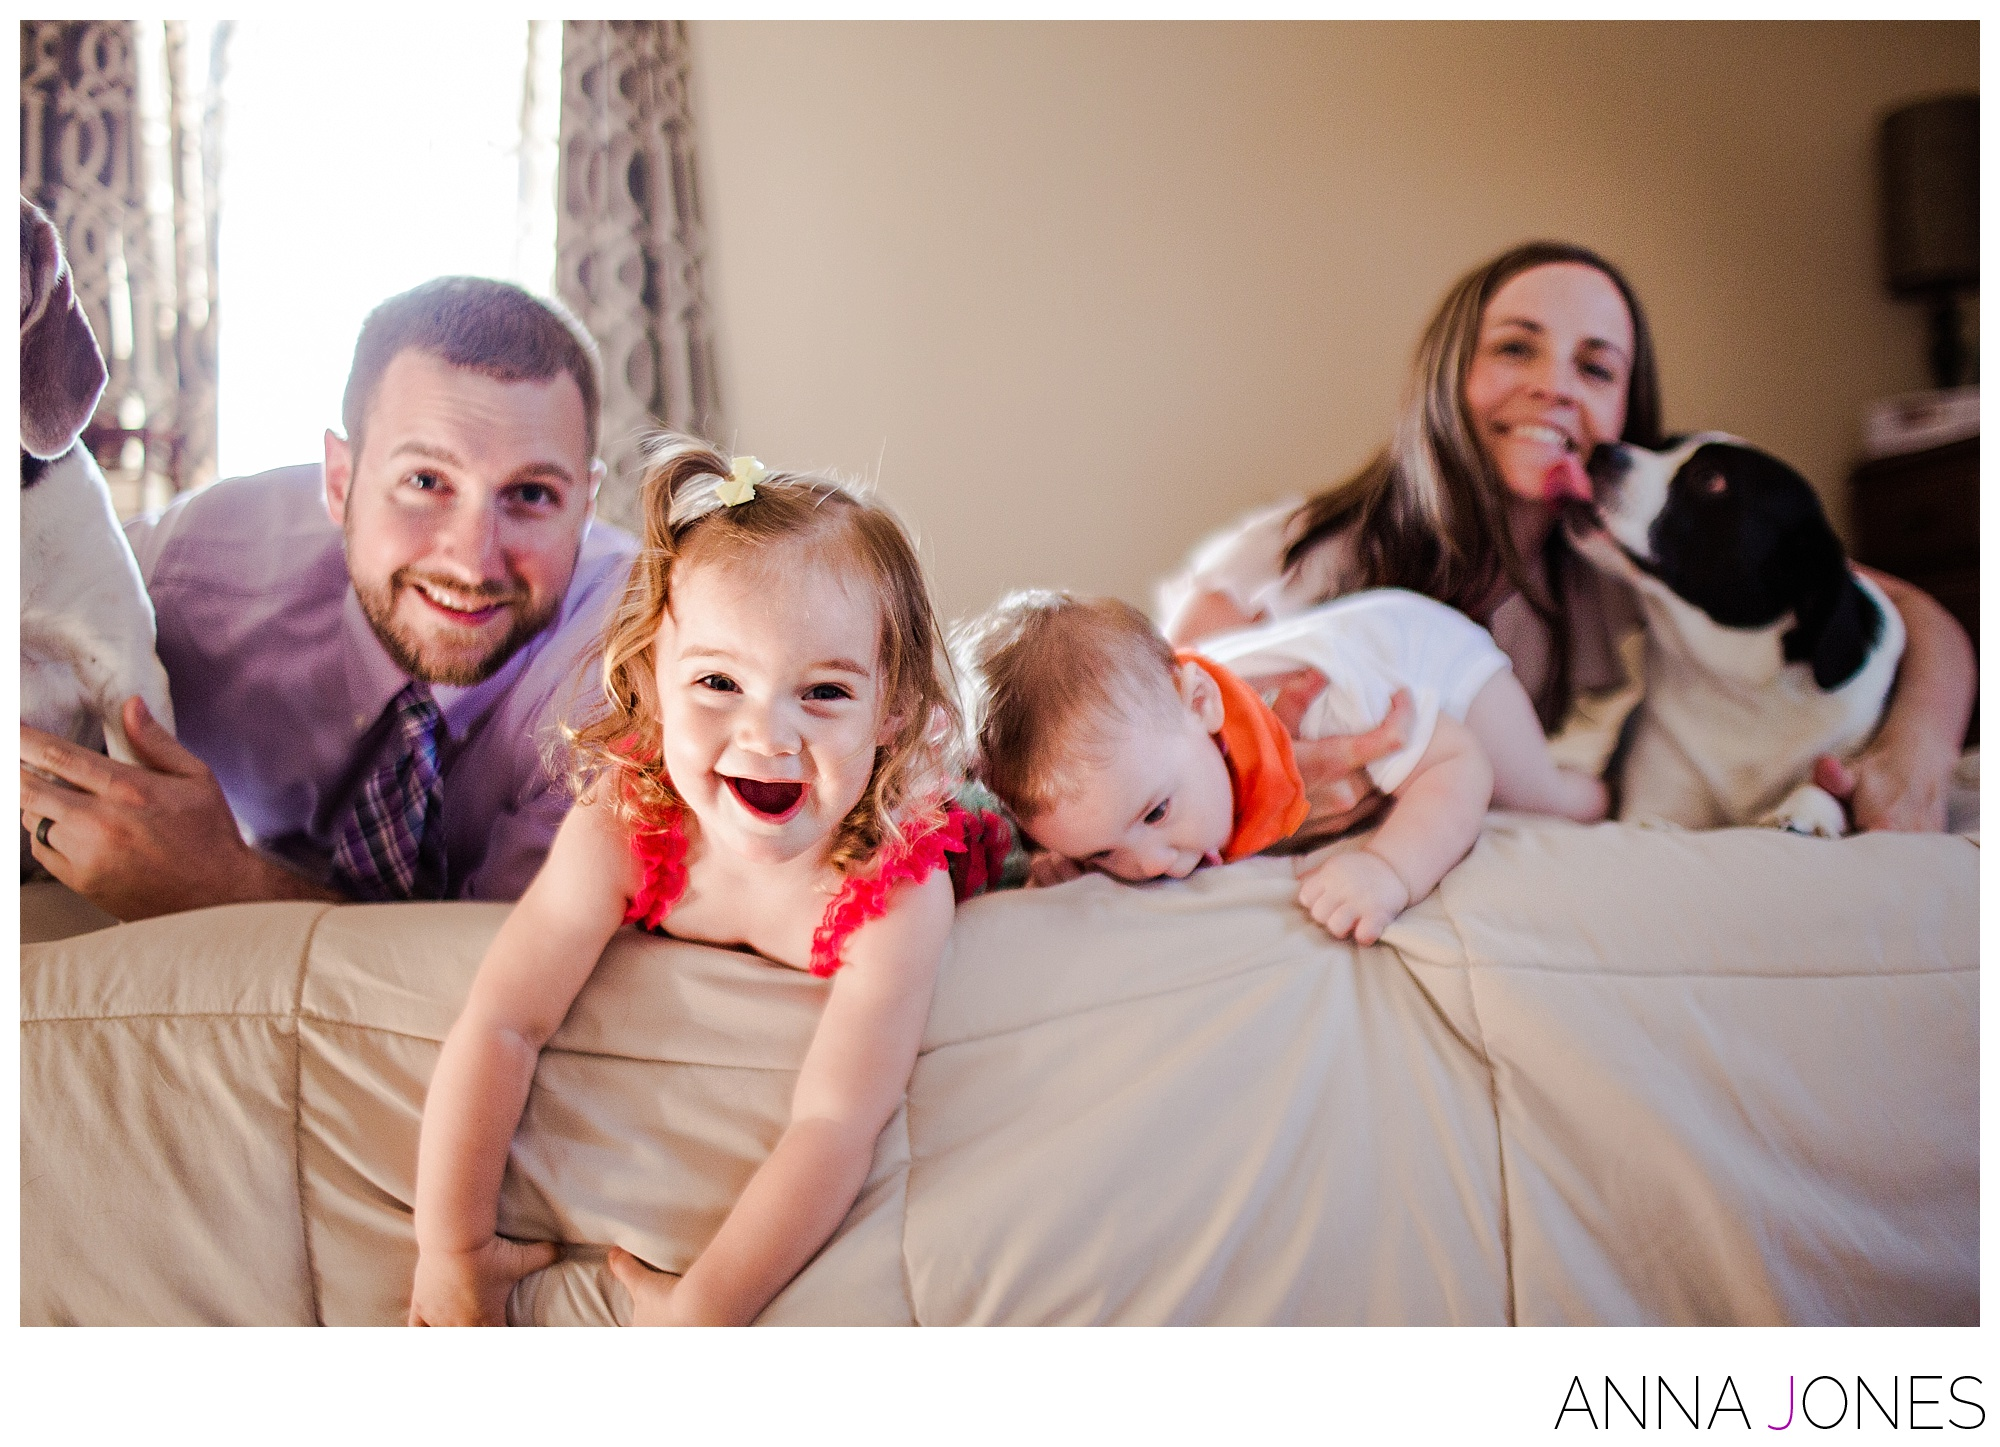 The McDaniels? Anna Jones Family + Lifestyle Photography ? www.annajon.es